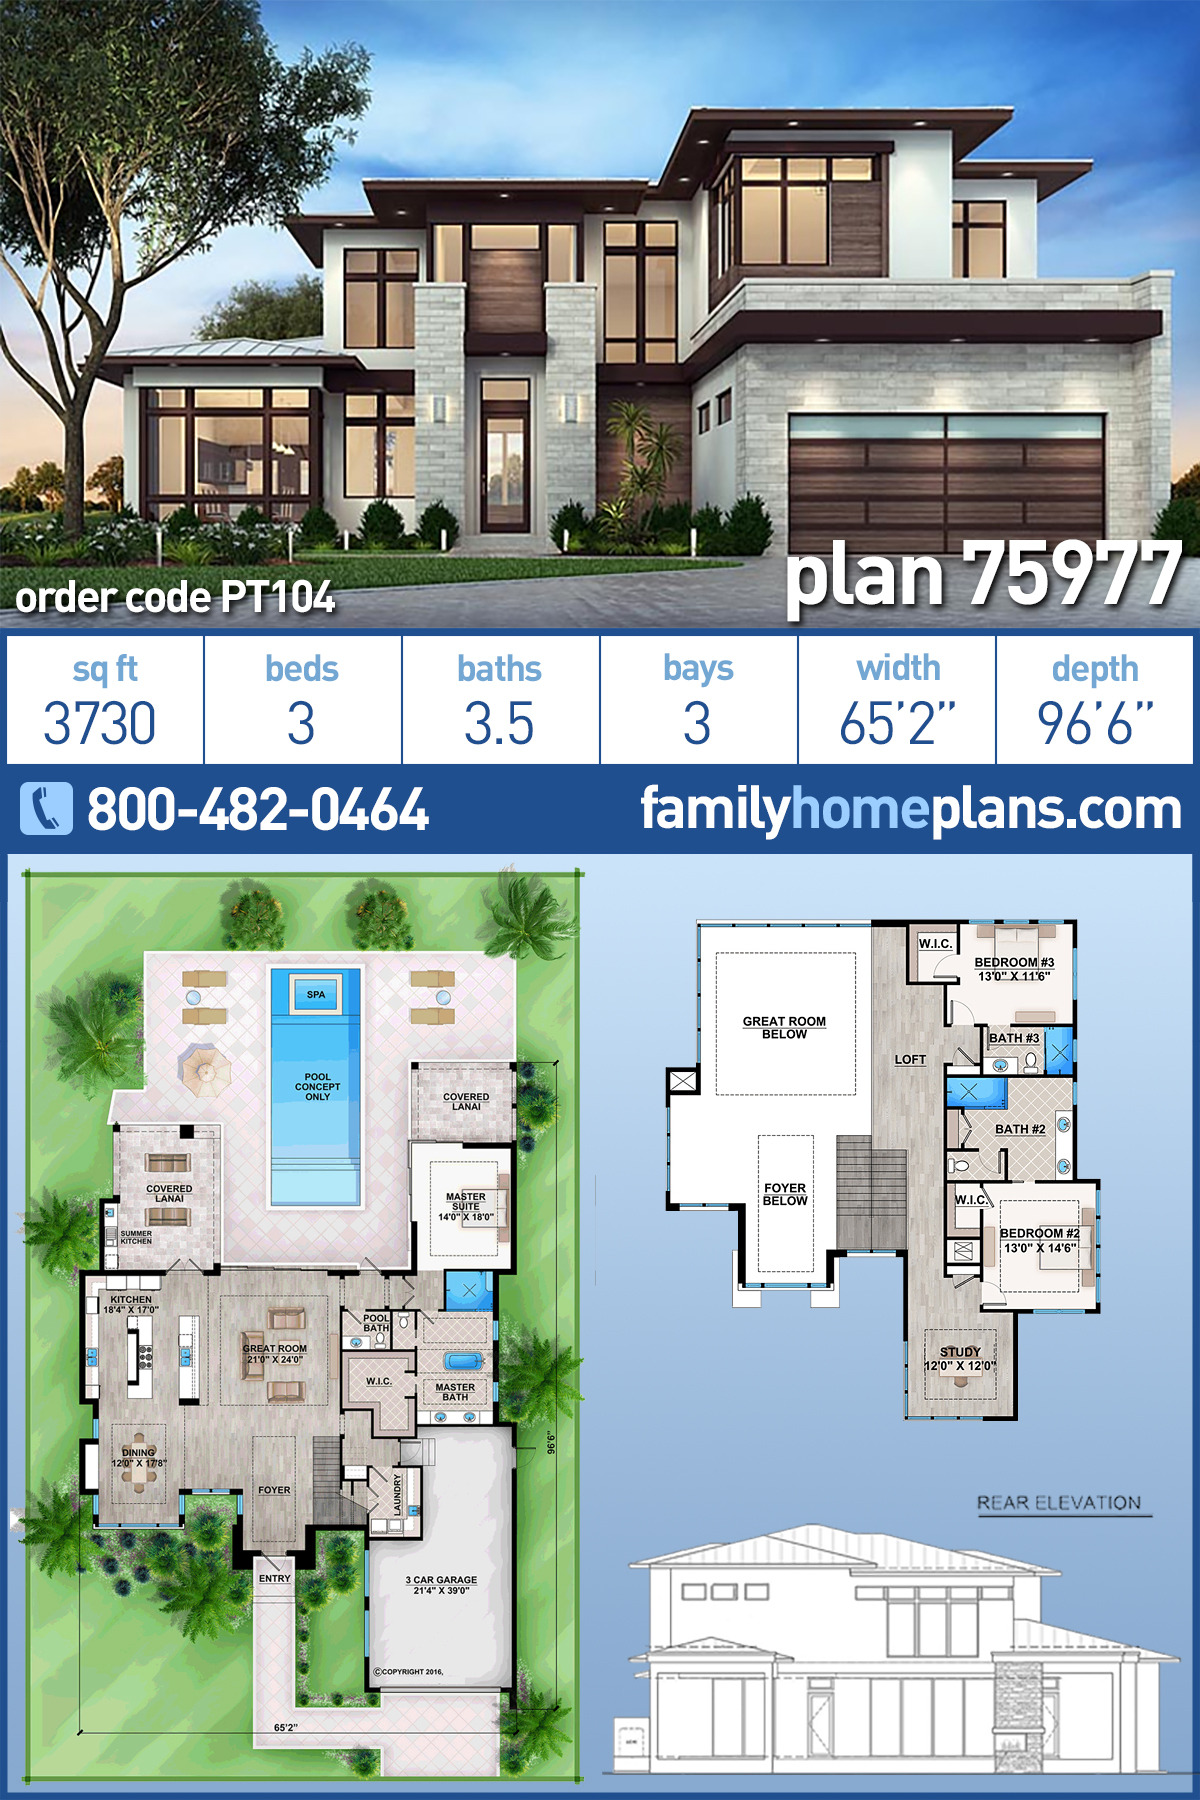 House Plan with Pictures Best Of Modern Style House Plan with 3 Bed 4 Bath 3 Car Garage